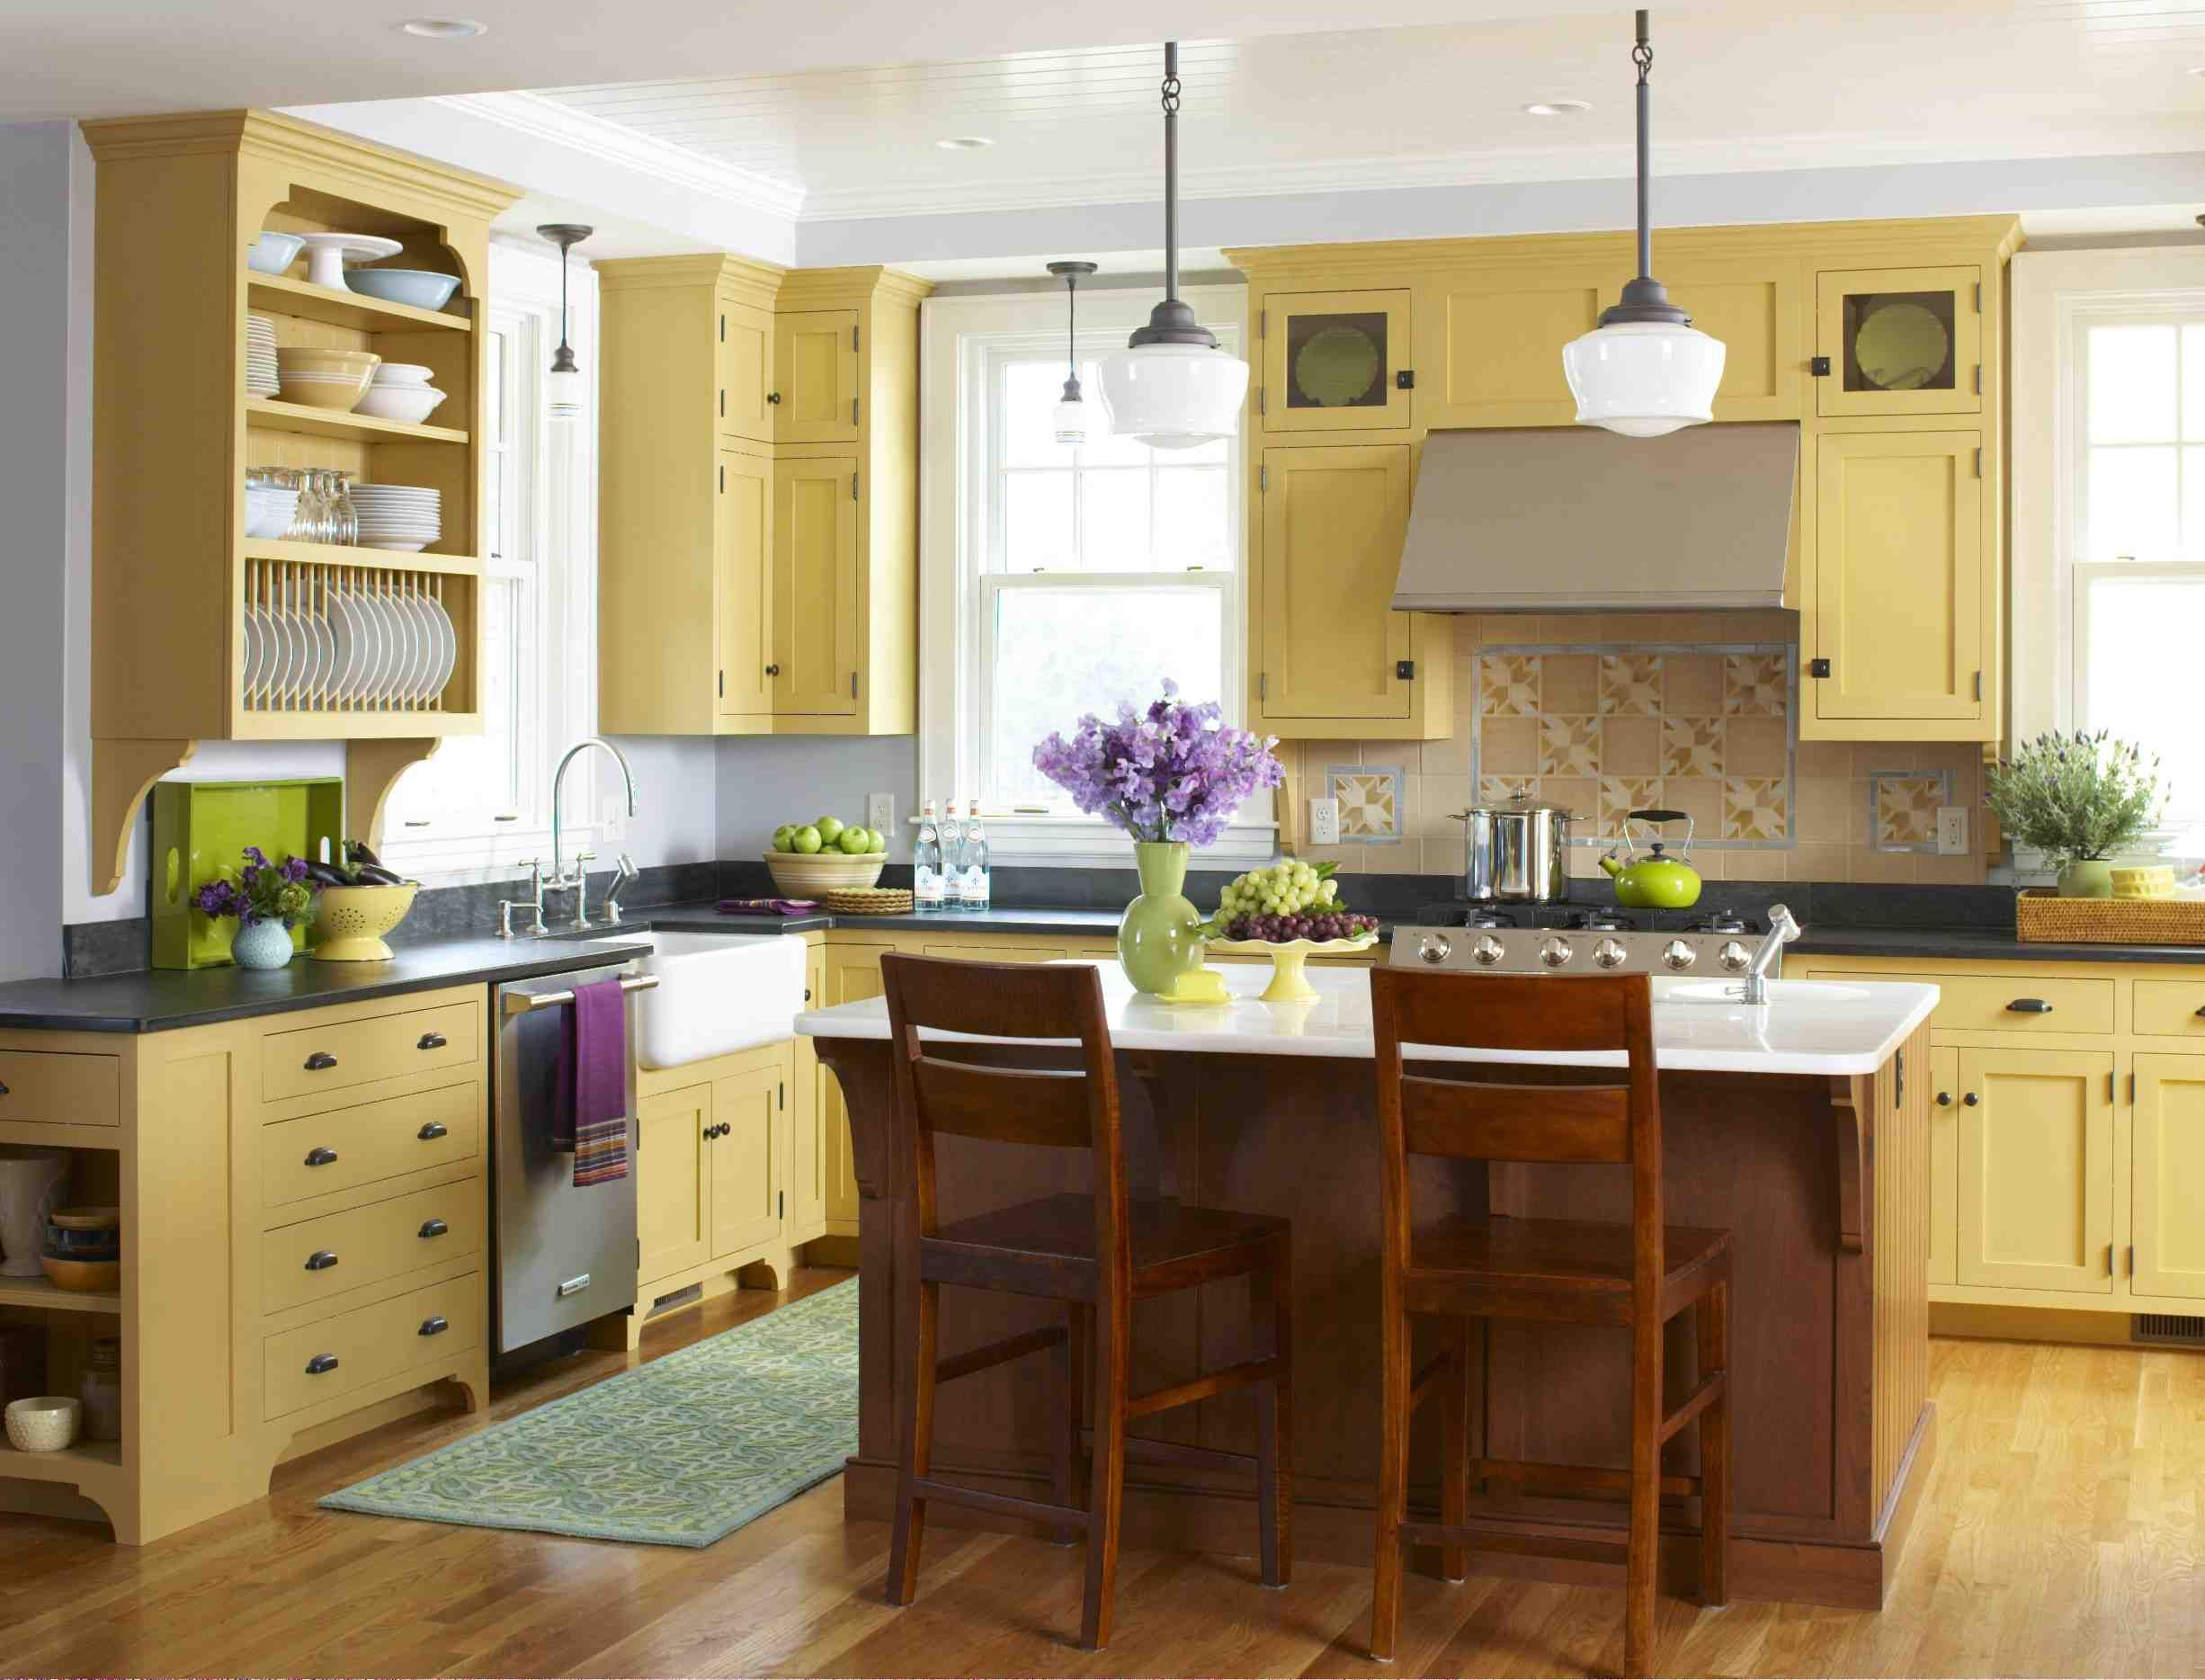 Style Archive—Mellow Yellow Kitchen